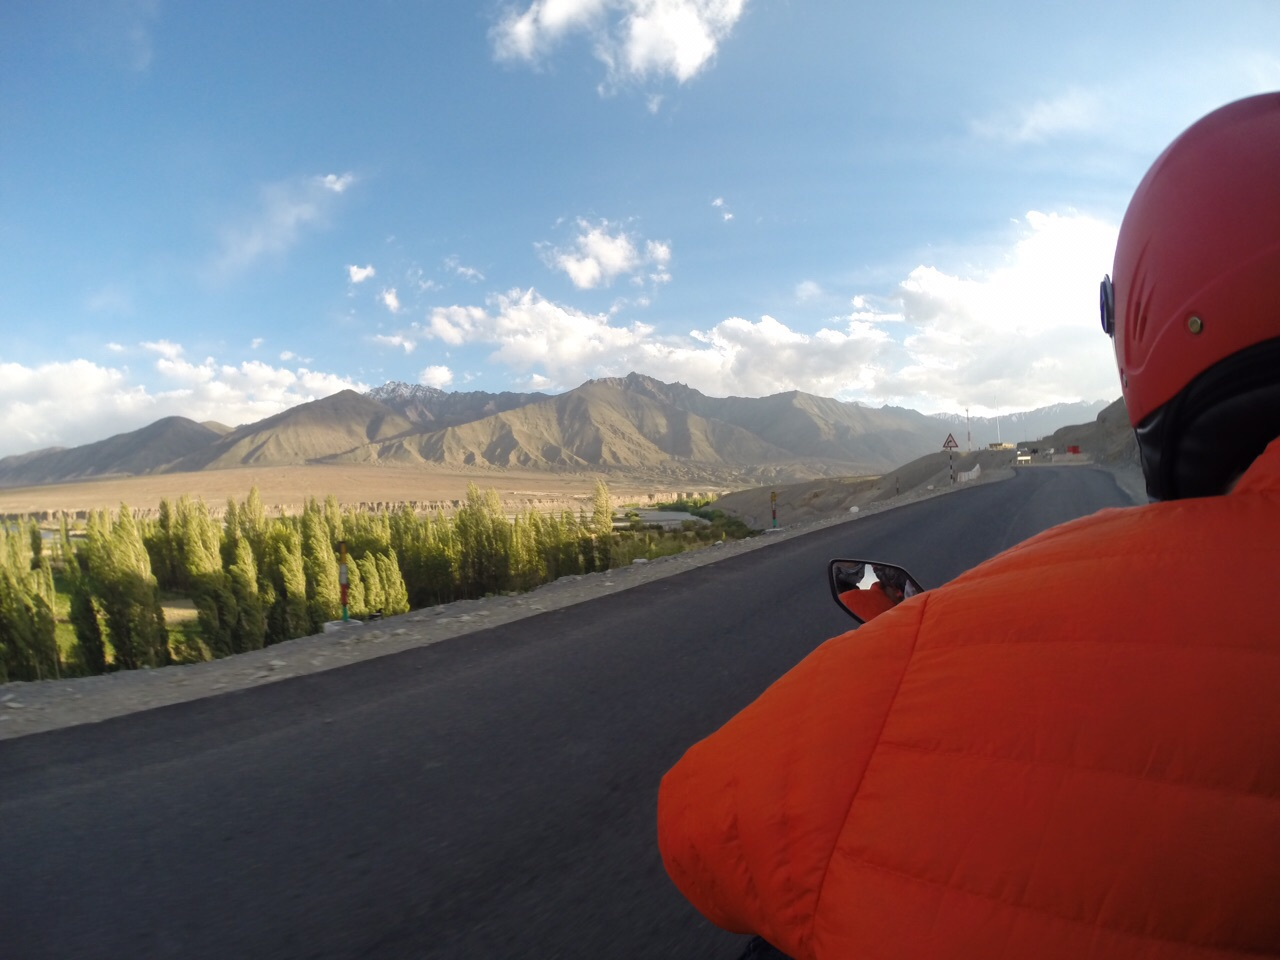 What Is so Special About Riding a Motorcycle in Leh?